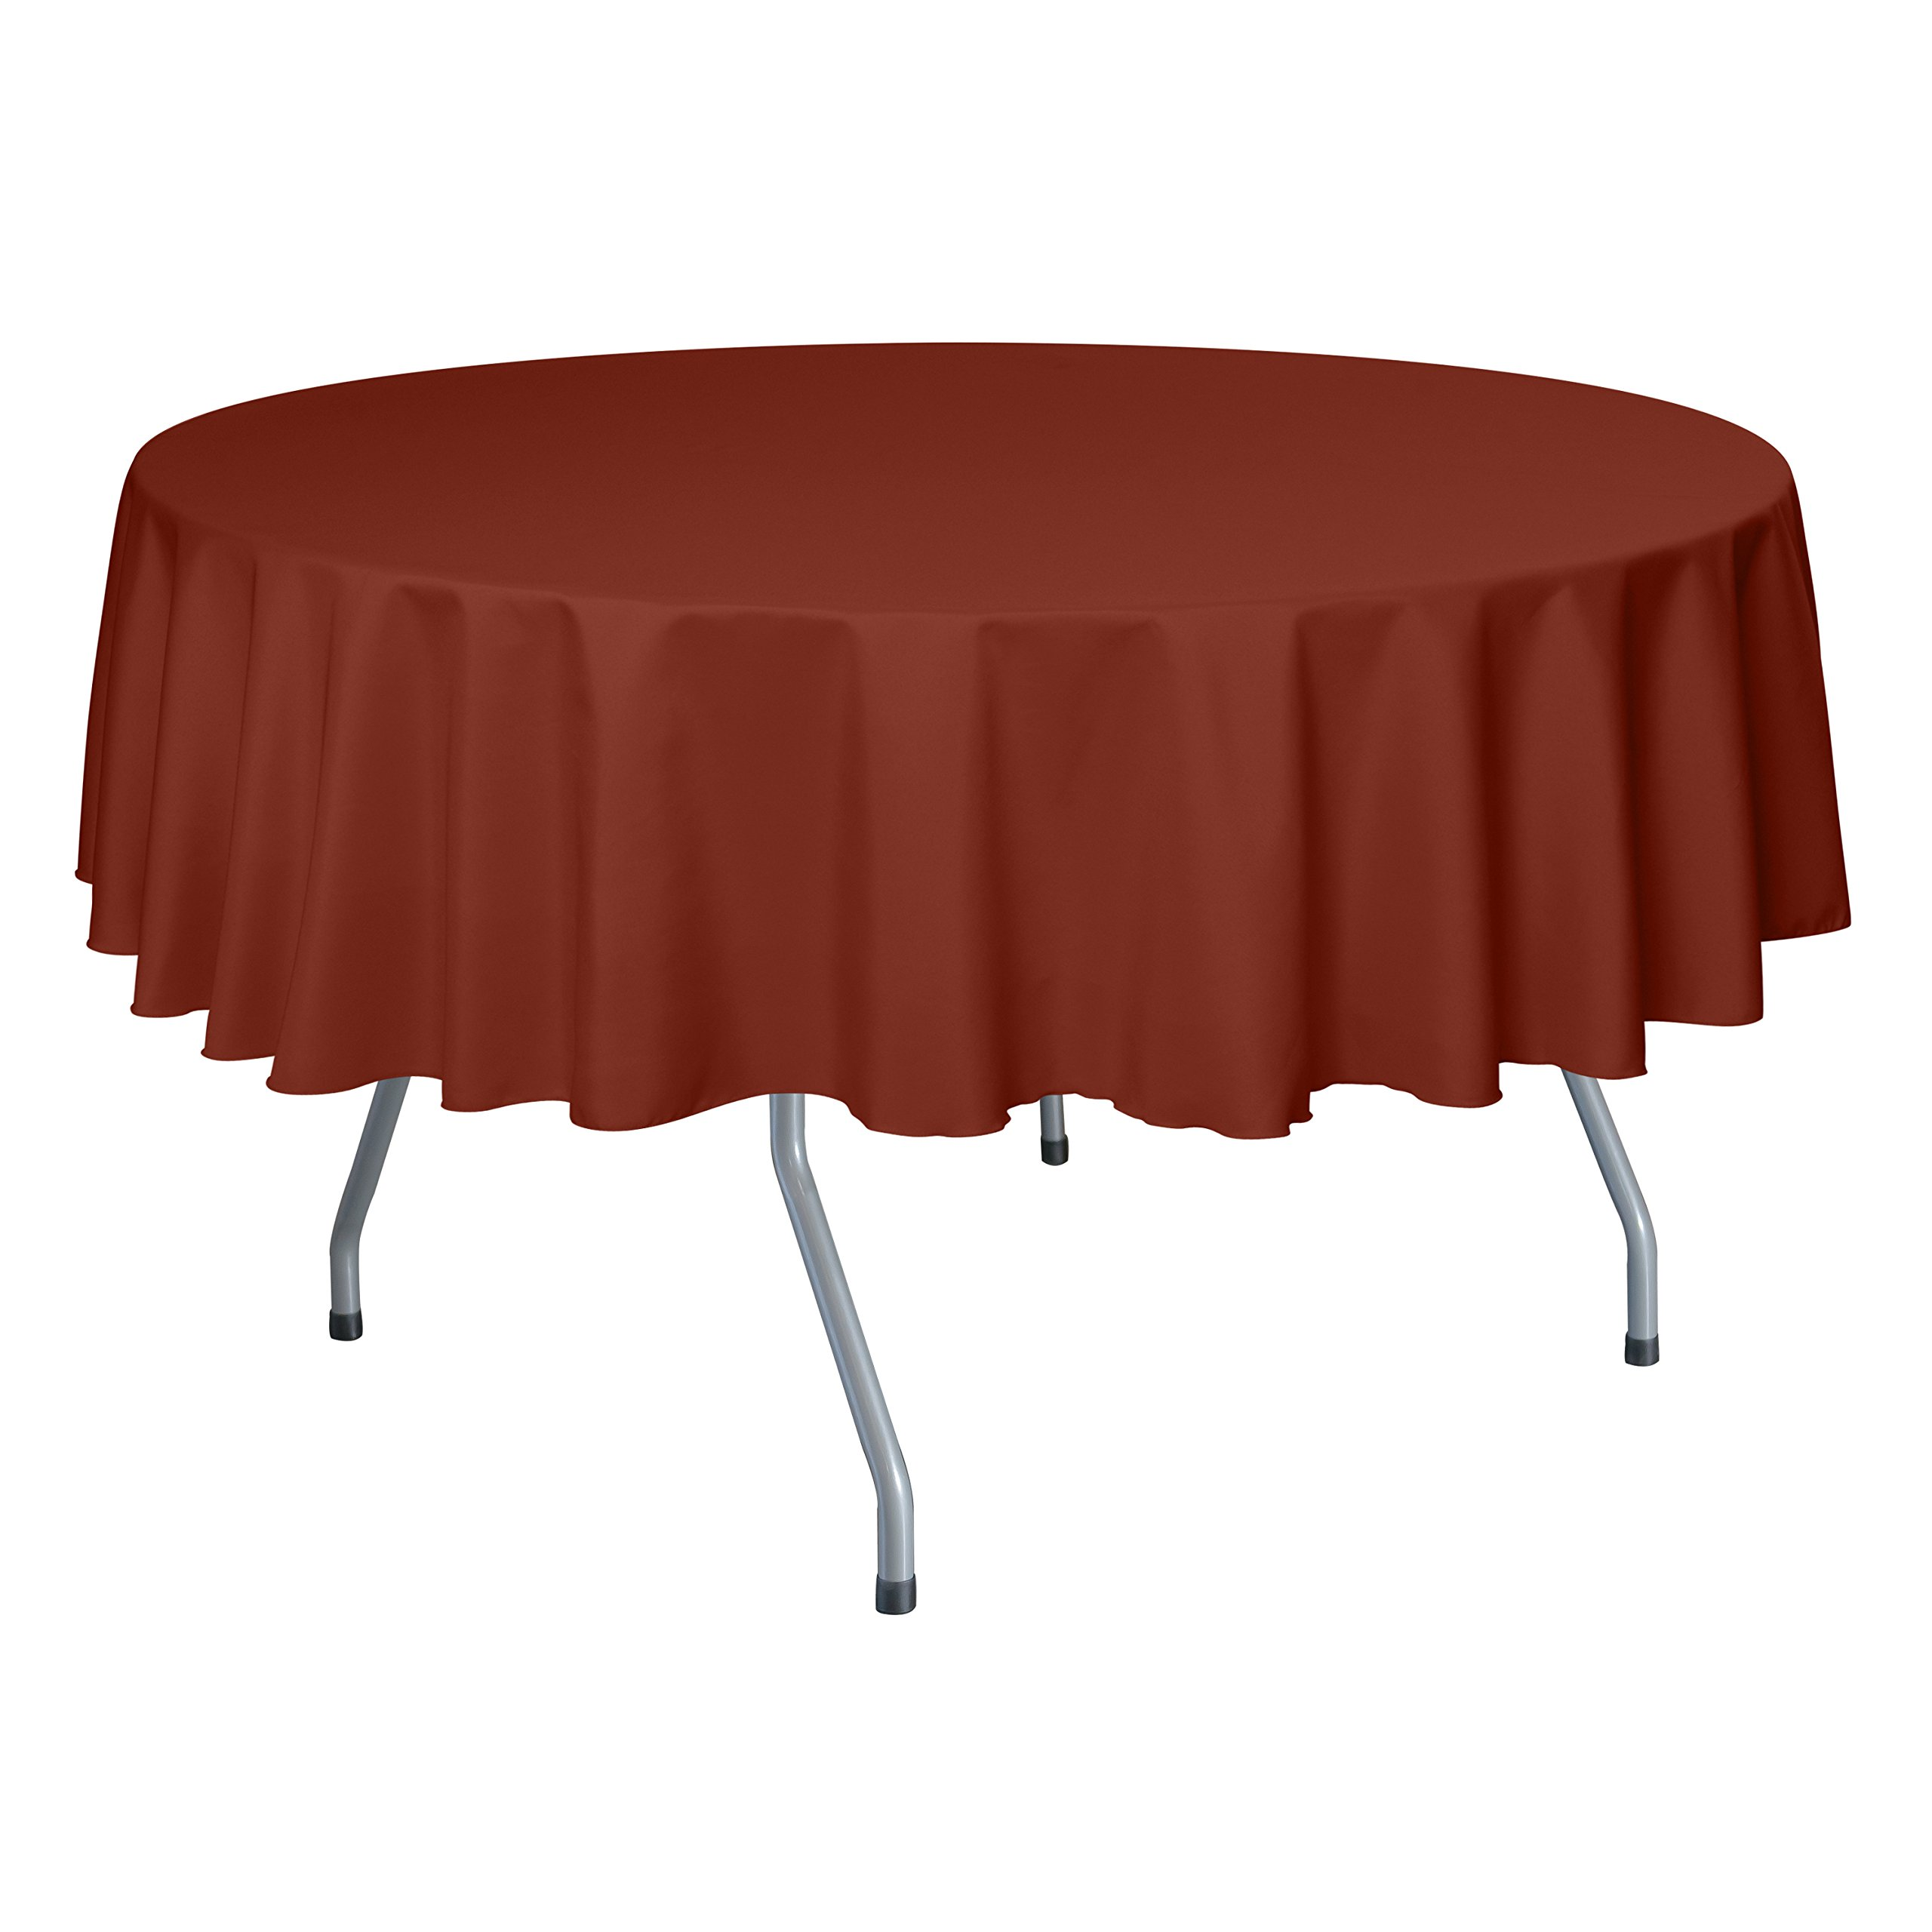 Ultimate Textile (5 Pack) 84-Inch Round Polyester Linen Tablecloth - for Wedding, Restaurant or Banquet use, Burnt Orange